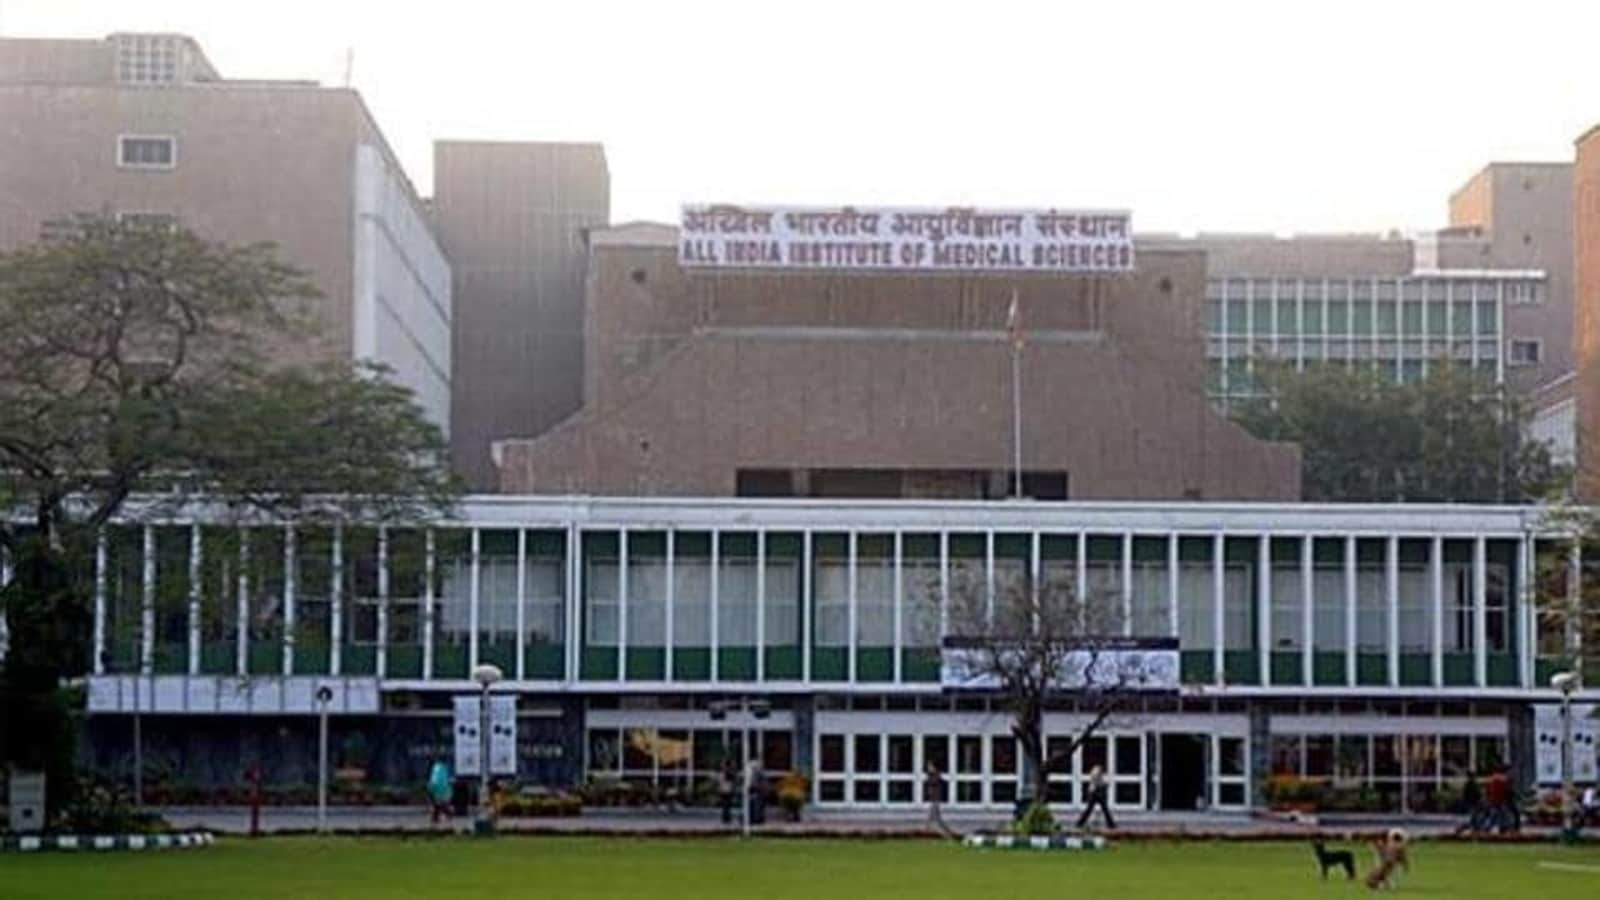 AIIMS Delhi reopens admissions to emergency ward after halting it for an hour | Latest News Delhi - Hindustan Times